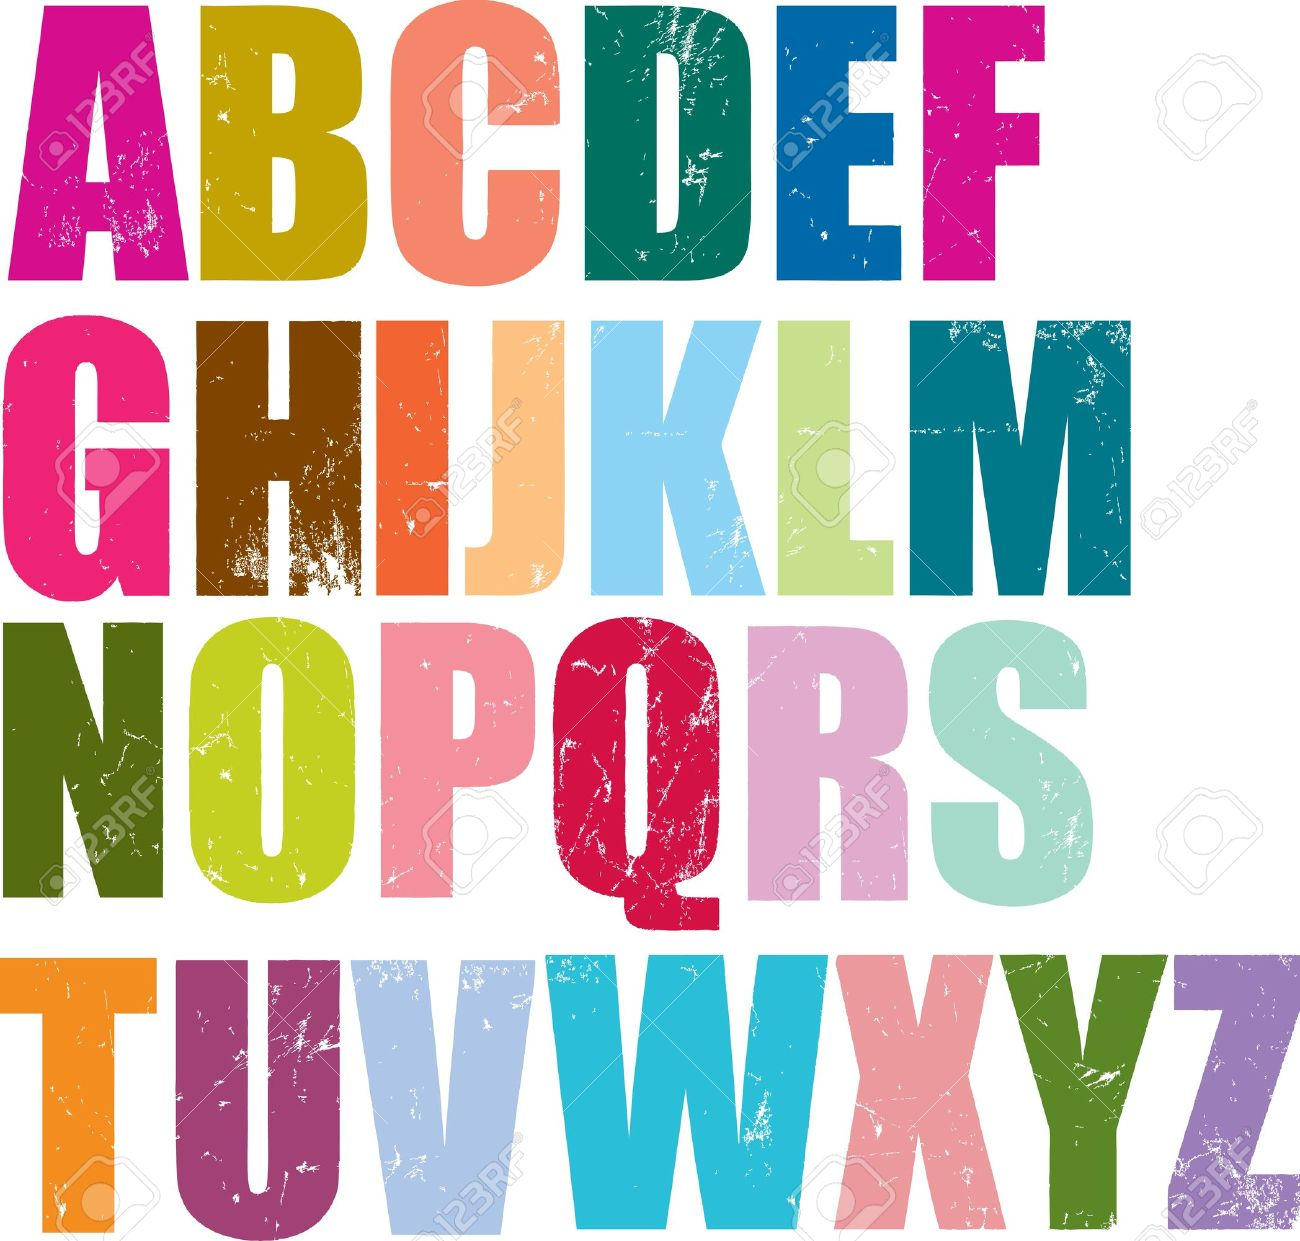 Individual Letterpress Letters Of The Whole English Alphabet ...